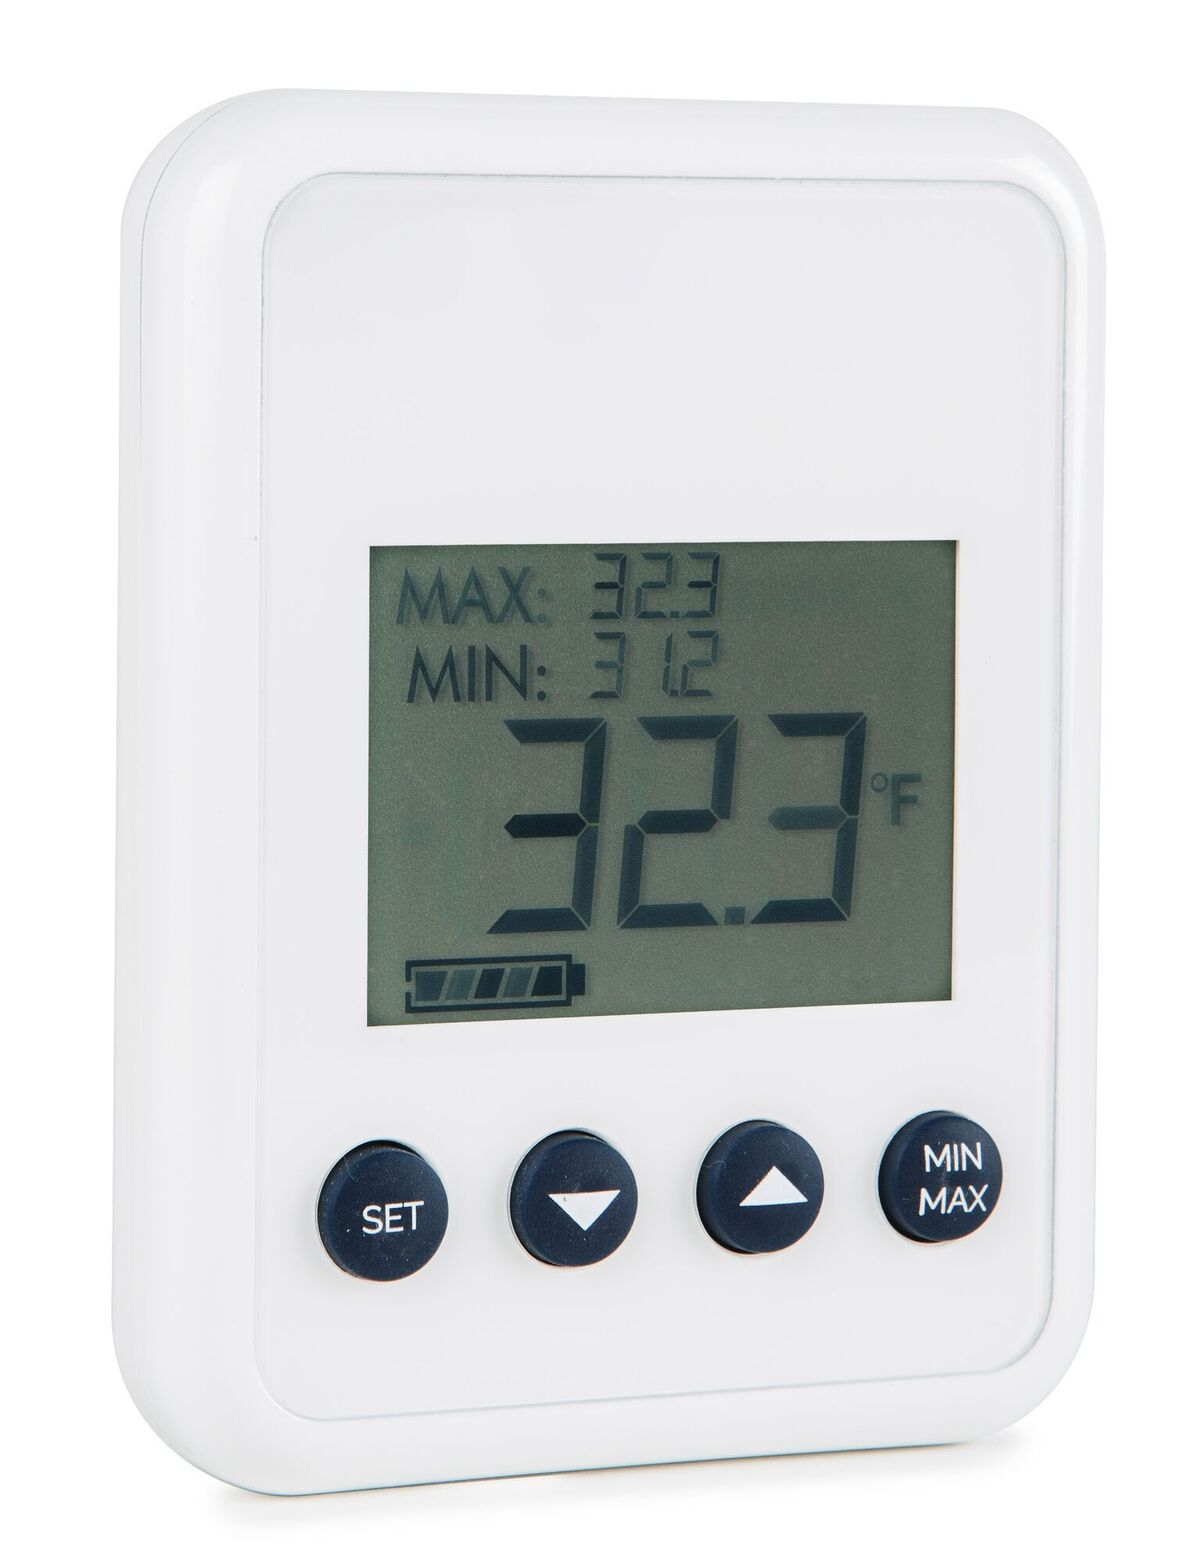 Image 2: Temperature display provides quick view of sensor data